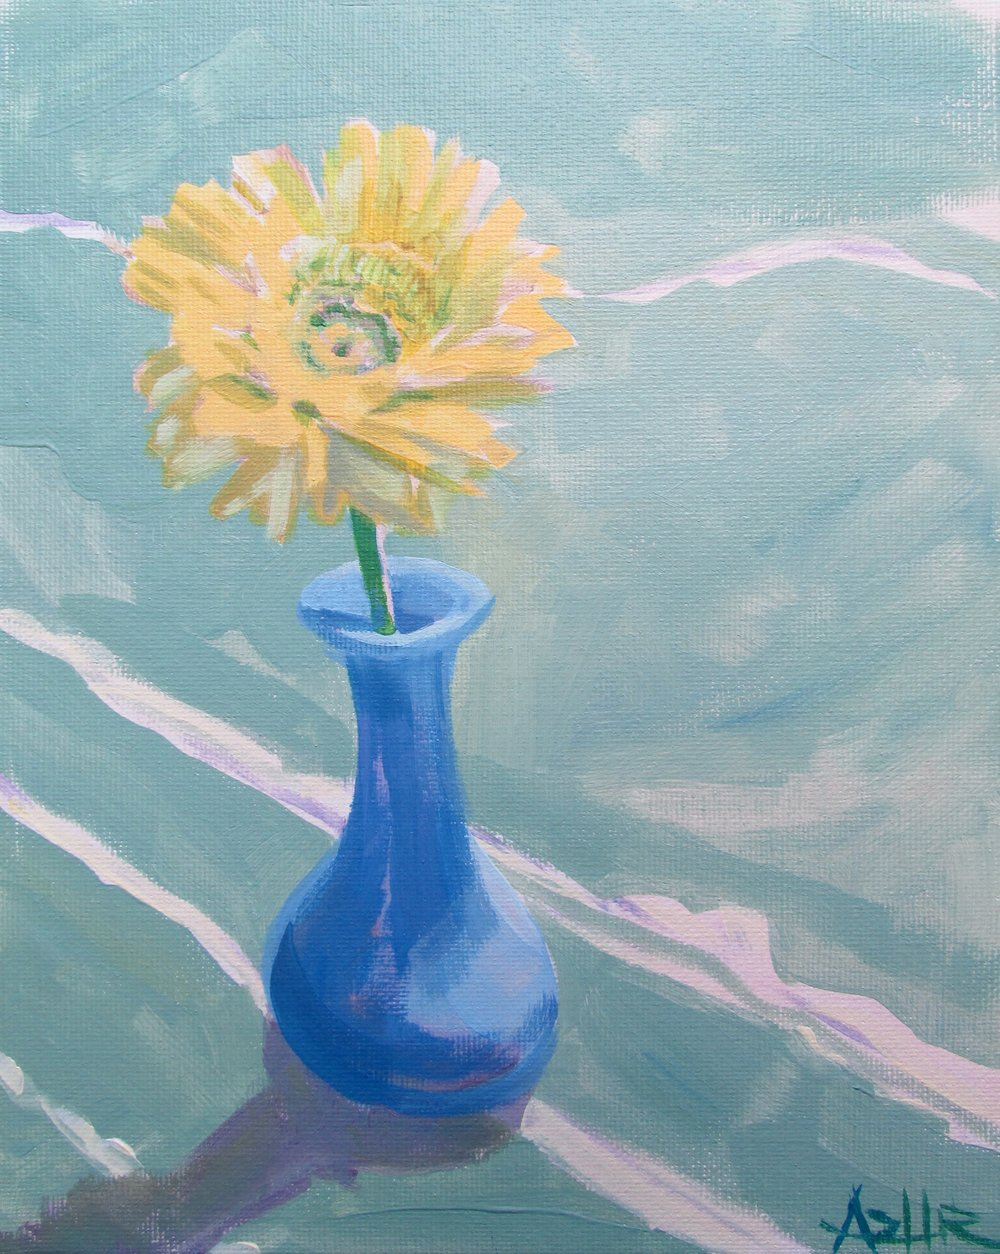 "SOLD, Sunshine in a Bottle, Copyright 2016 Hirschten, Oil on Canvas, 8"" x 10"""